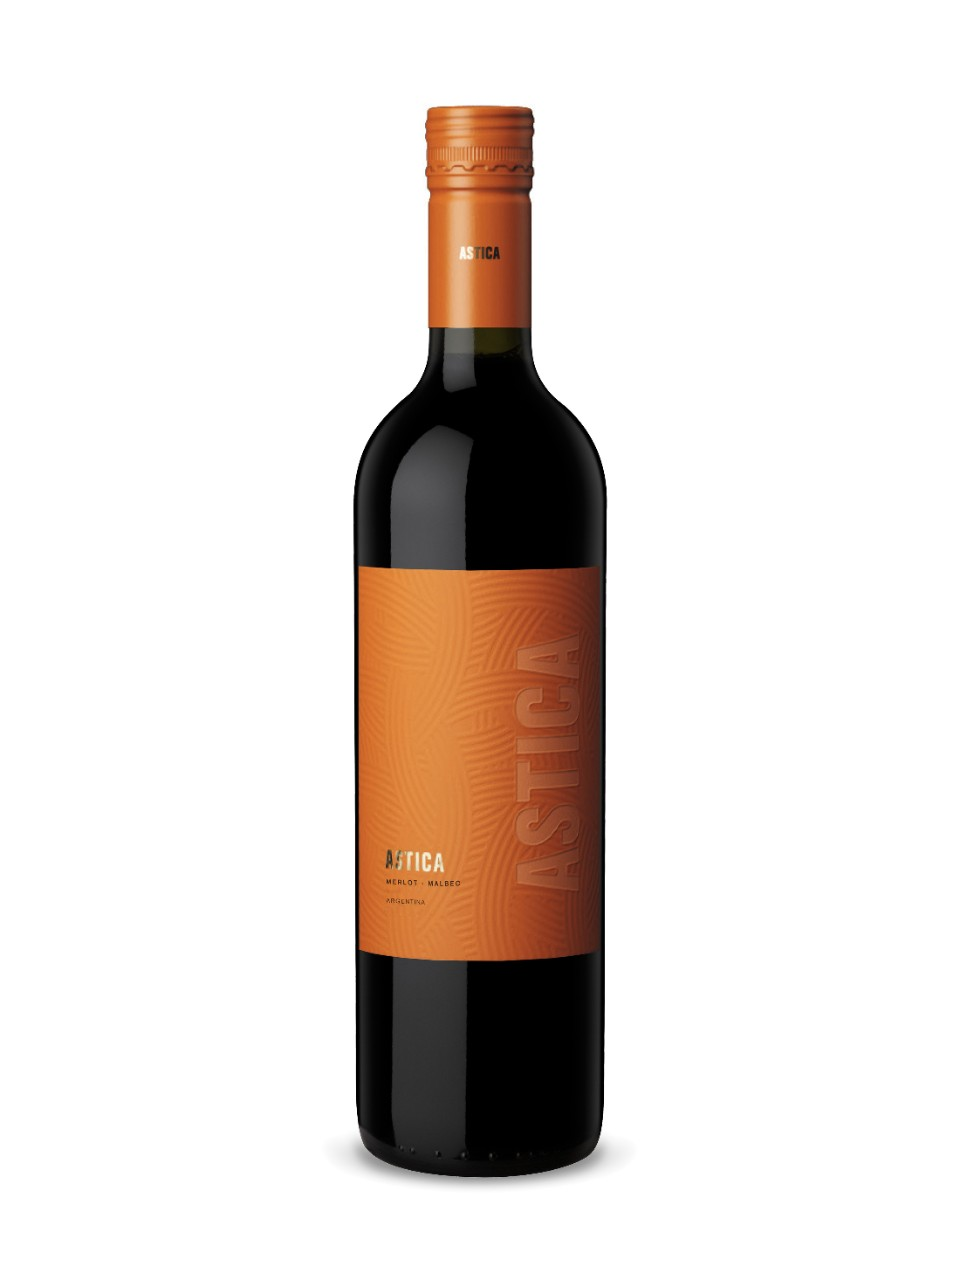 Image for Trapiche Astica Merlot Malbec from LCBO